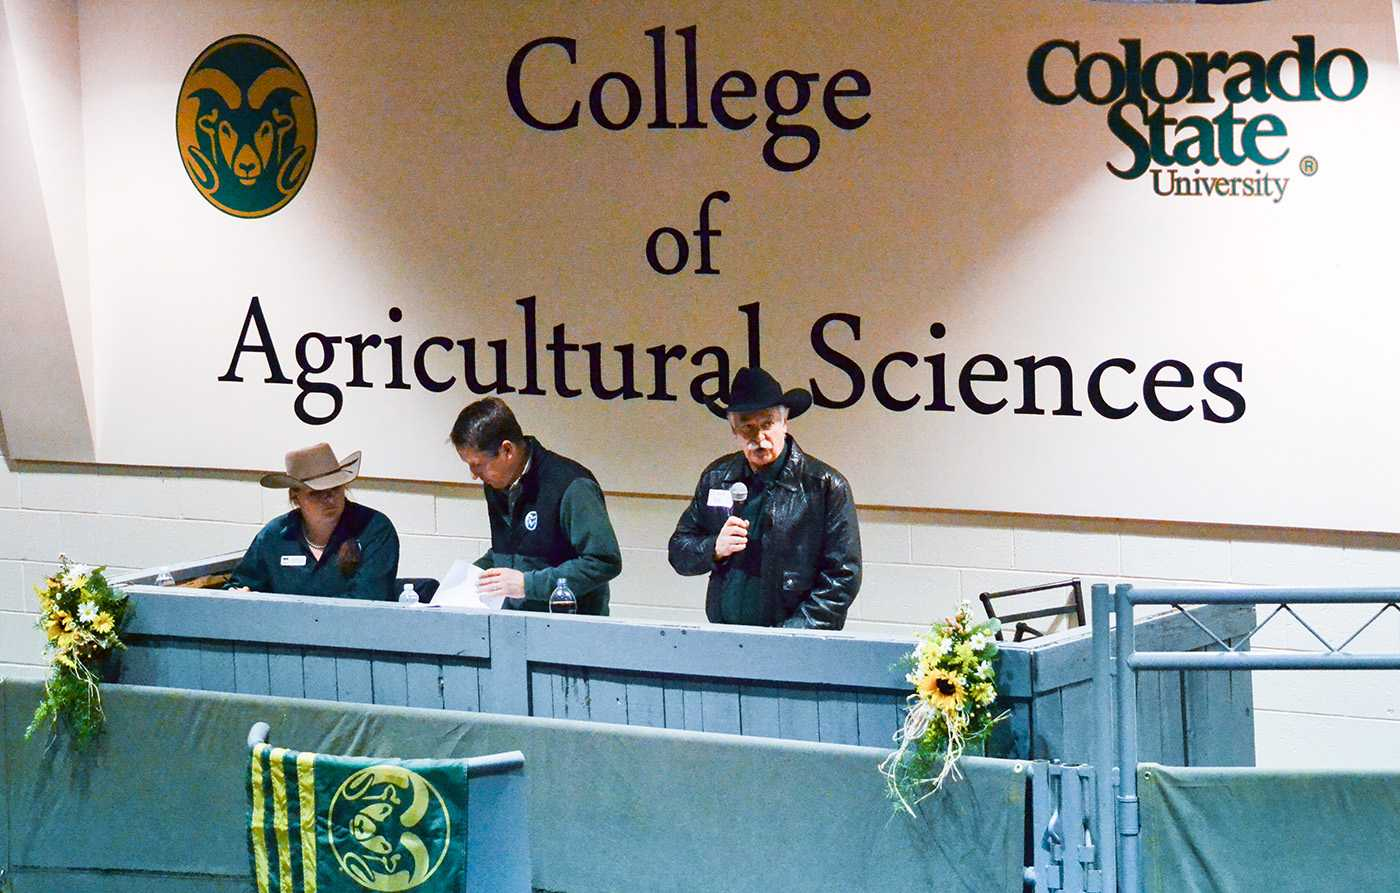 Dr. Kevin Pond, Head of the Animal Sciences Department, welcomed buyers and spectators to CSU's 38th Annual Bull Sale. Photo credit Dixie Crowe.